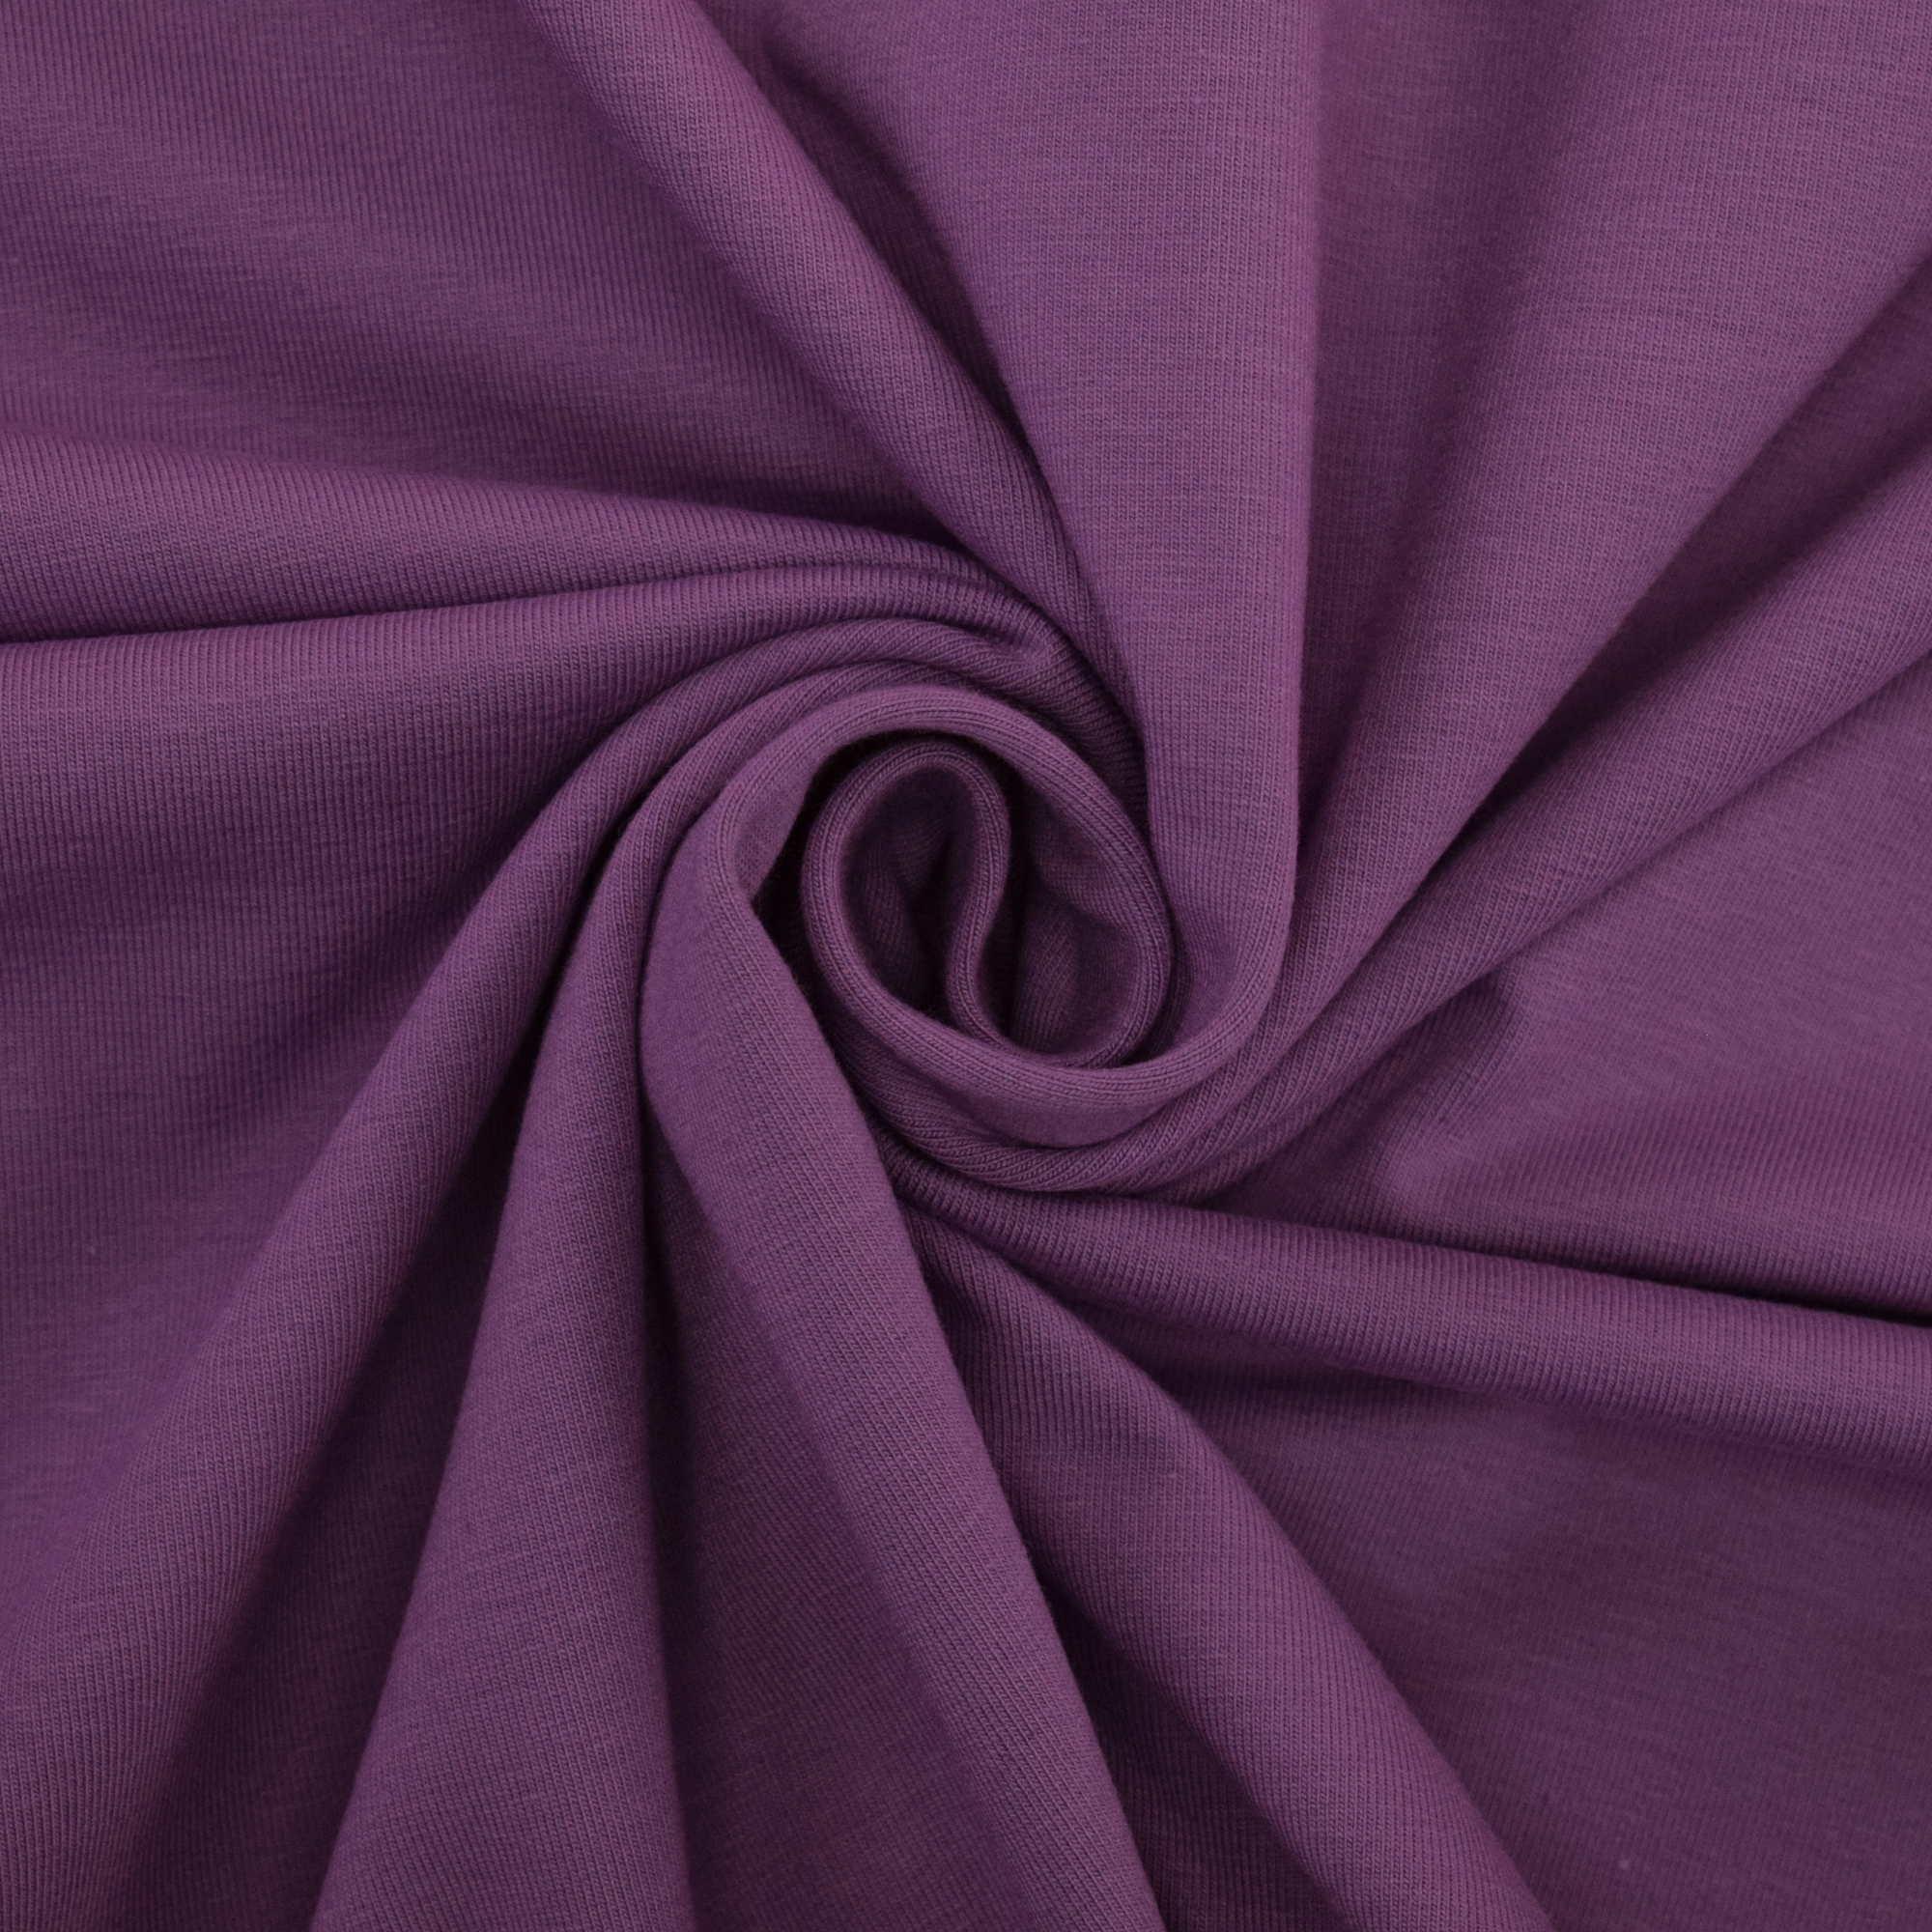 Cotton Jersey purple | 820.811-4205 | lila